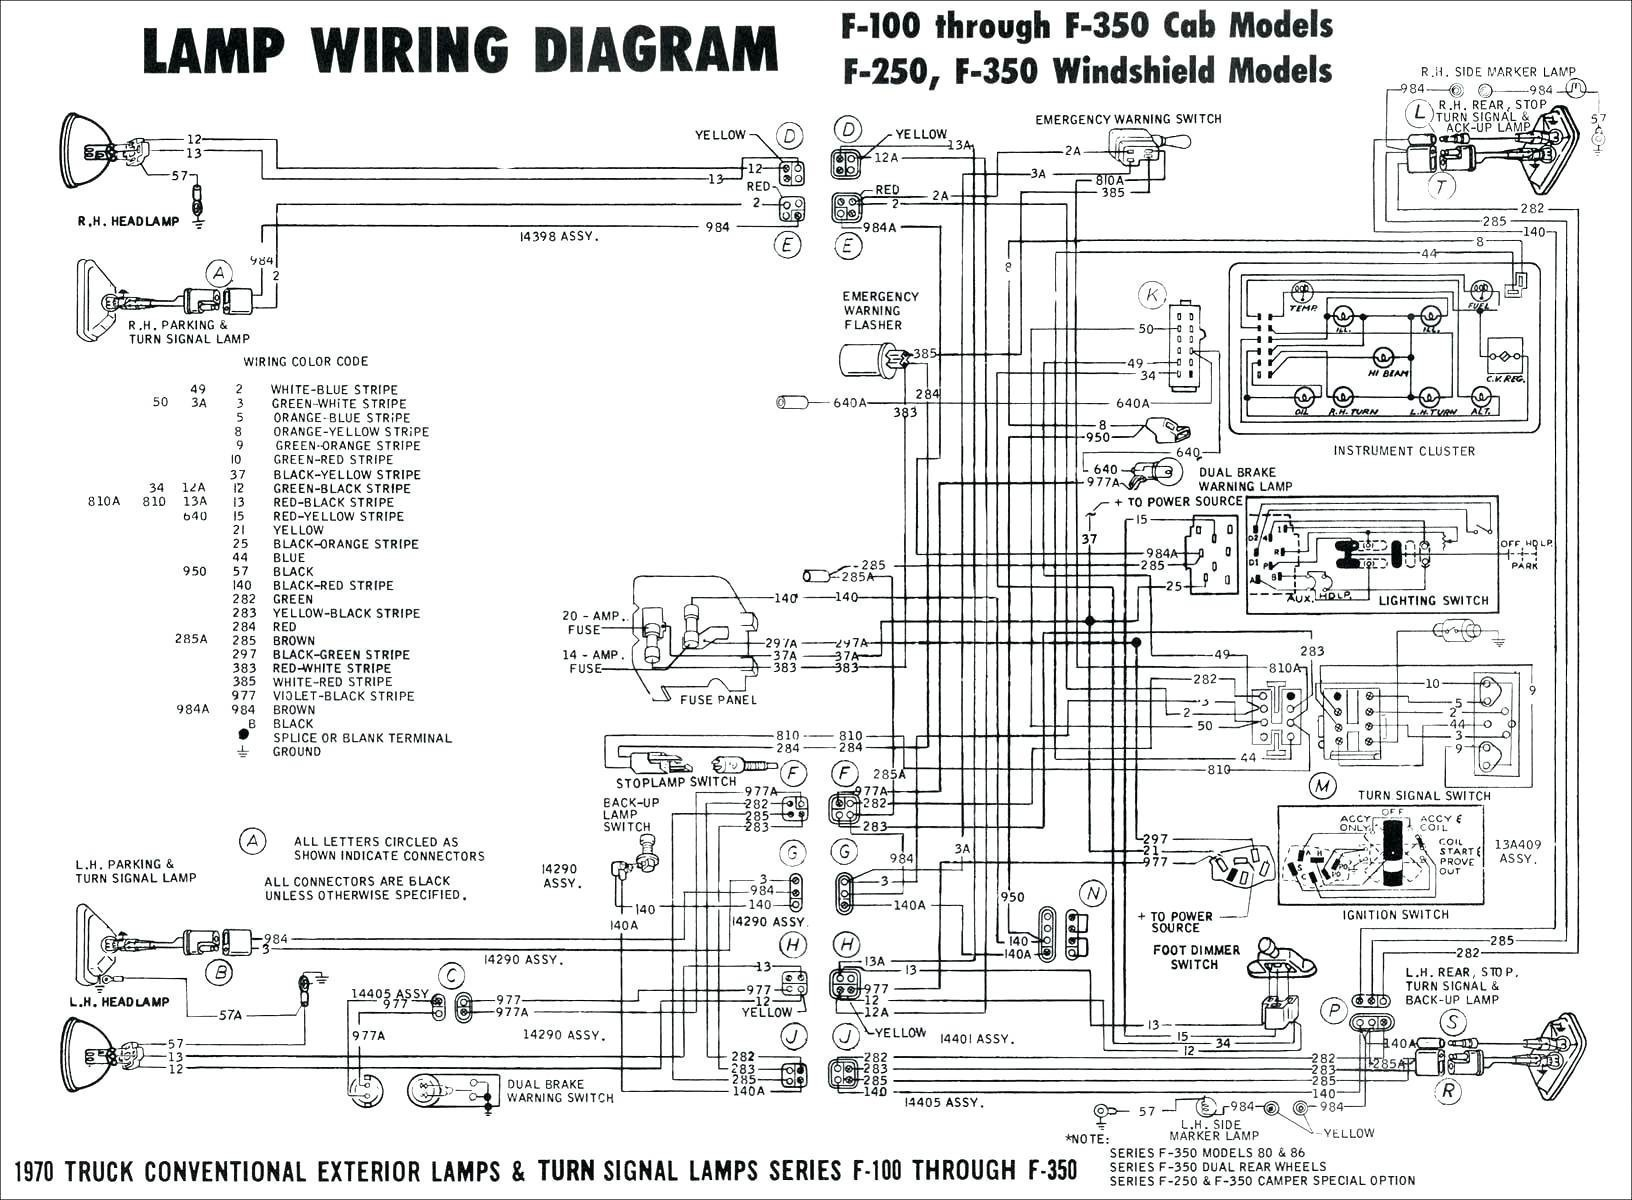 D16z6 Engine Harness Diagram Type R Likewise 88 Honda Civic Ecu Diagram 89 Crx Fuse Box Of D16z6 Engine Harness Diagram